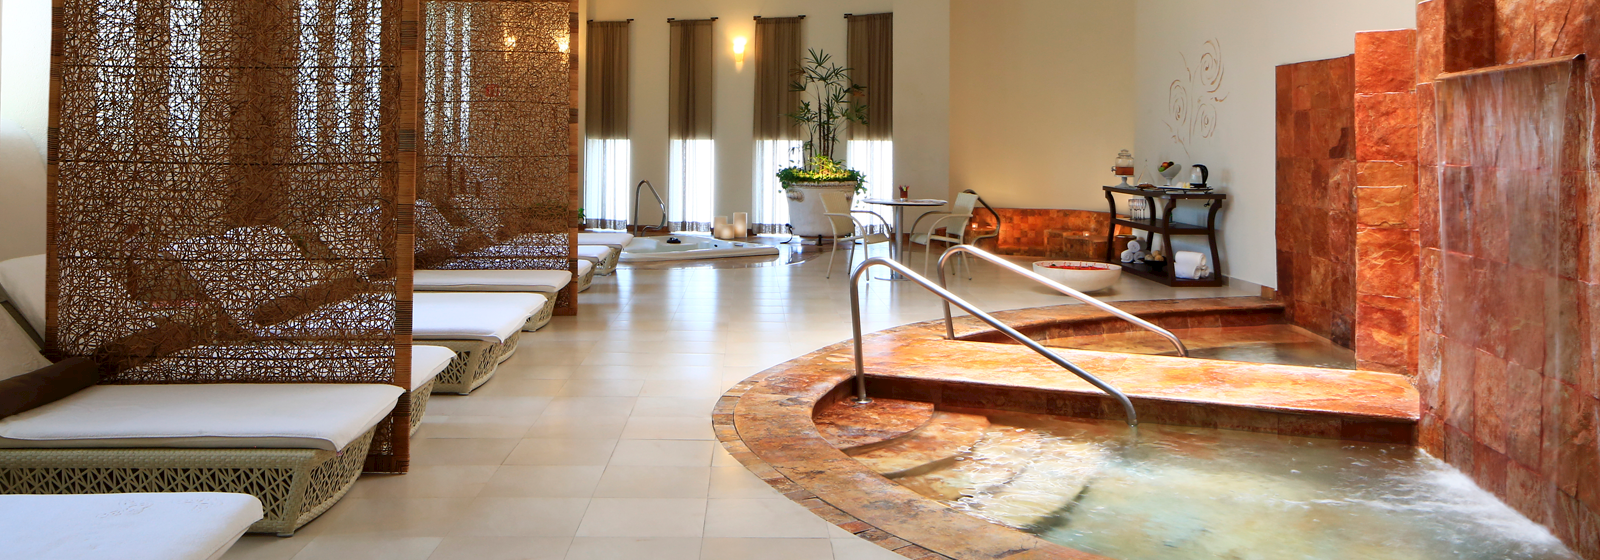 Sign Up for Spa offers in Grand Velas Riviera Nayarit